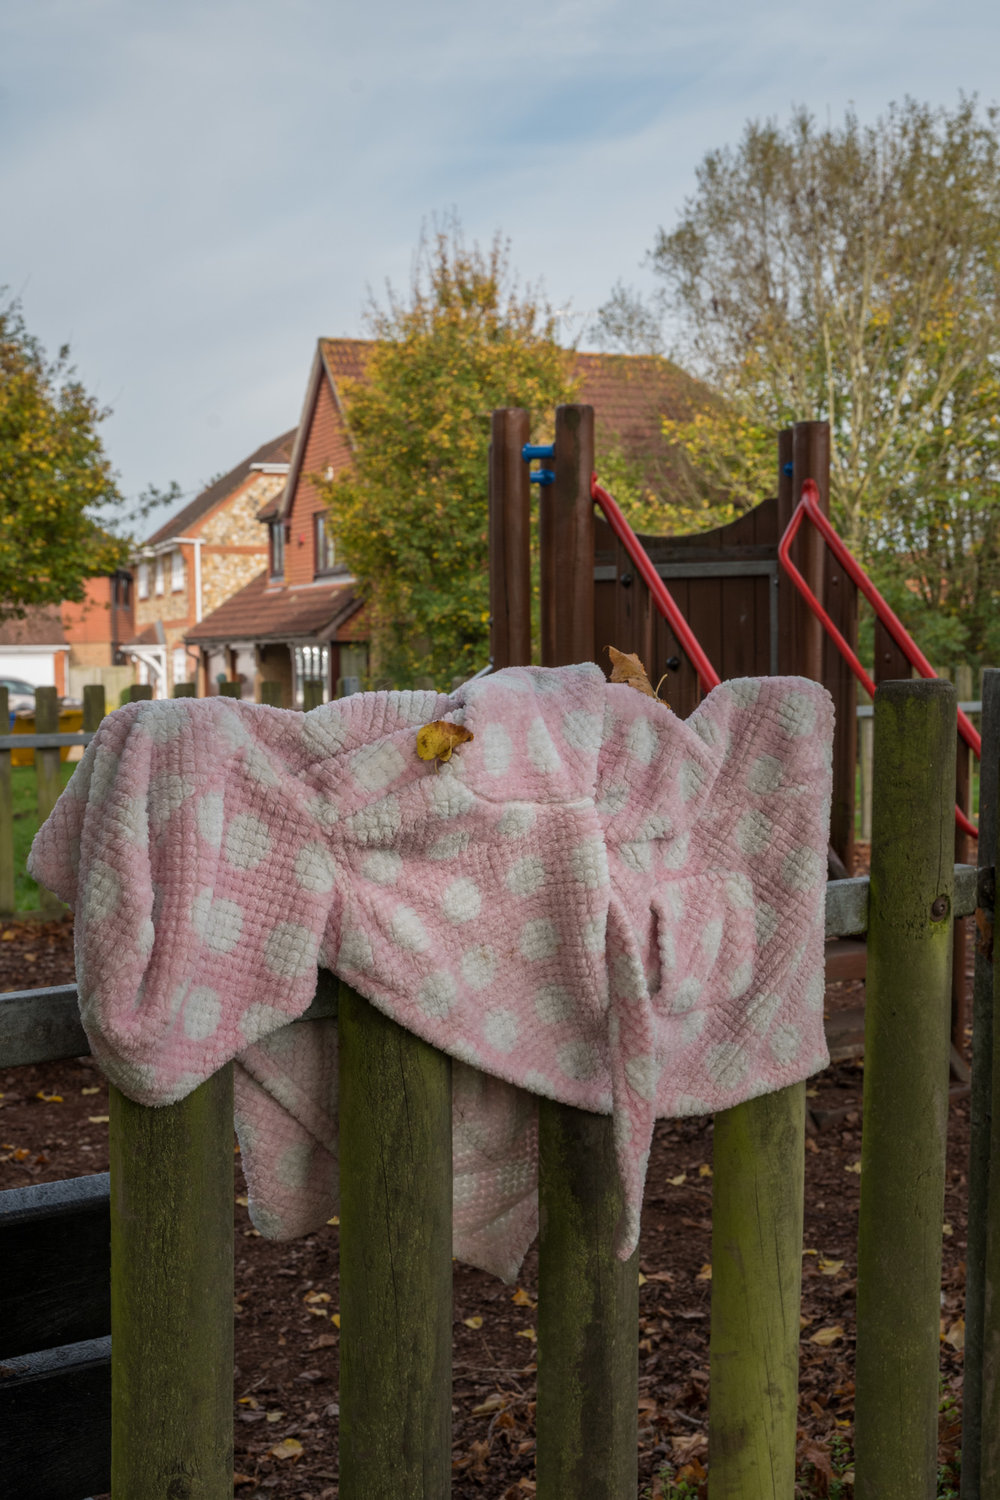 Dressing Gown on Play Park Railings